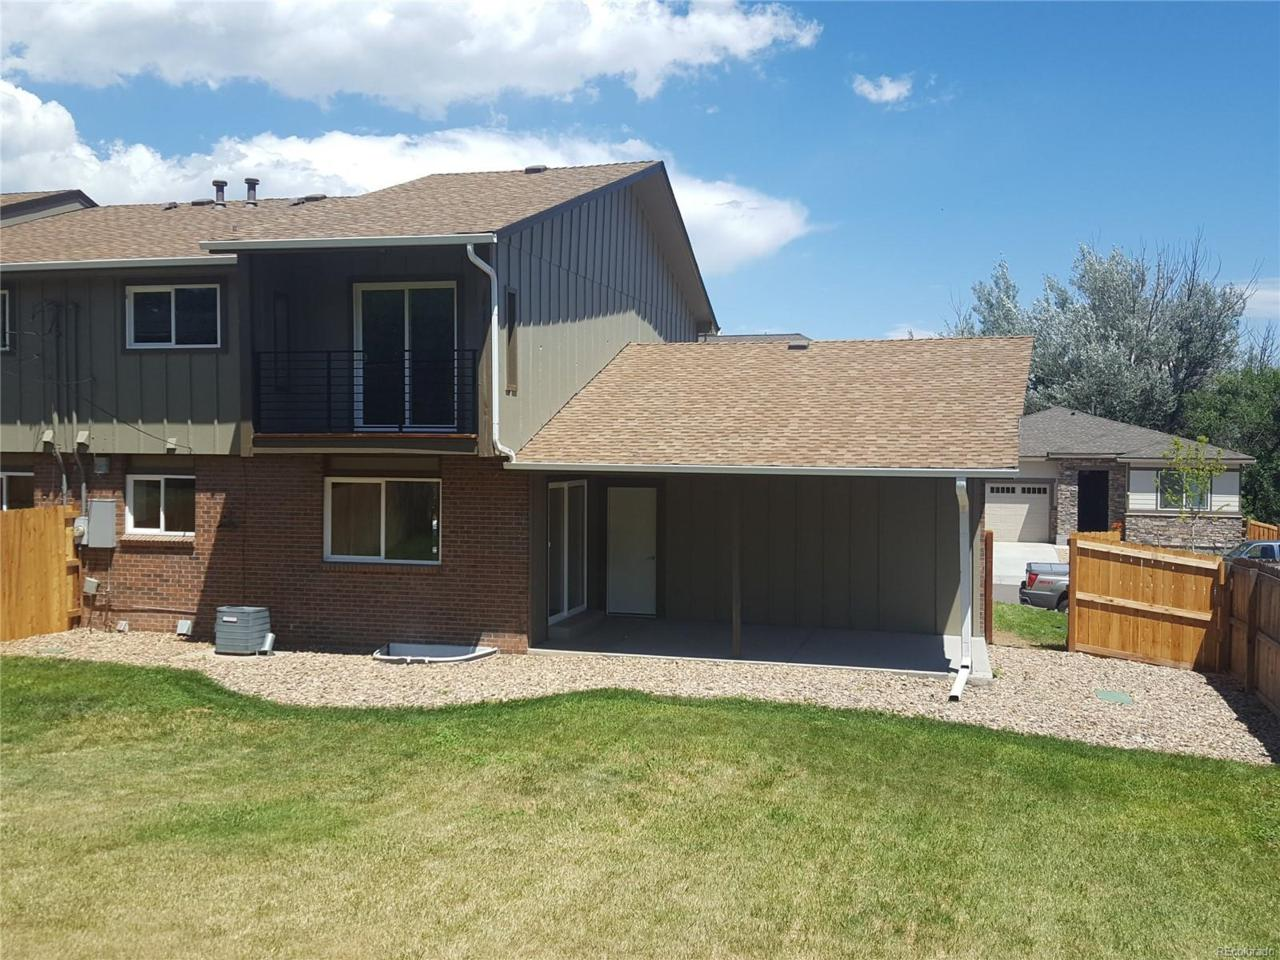 12476 & 12486 W 8th Place, Golden, CO 80401 (MLS #4539324) :: 8z Real Estate